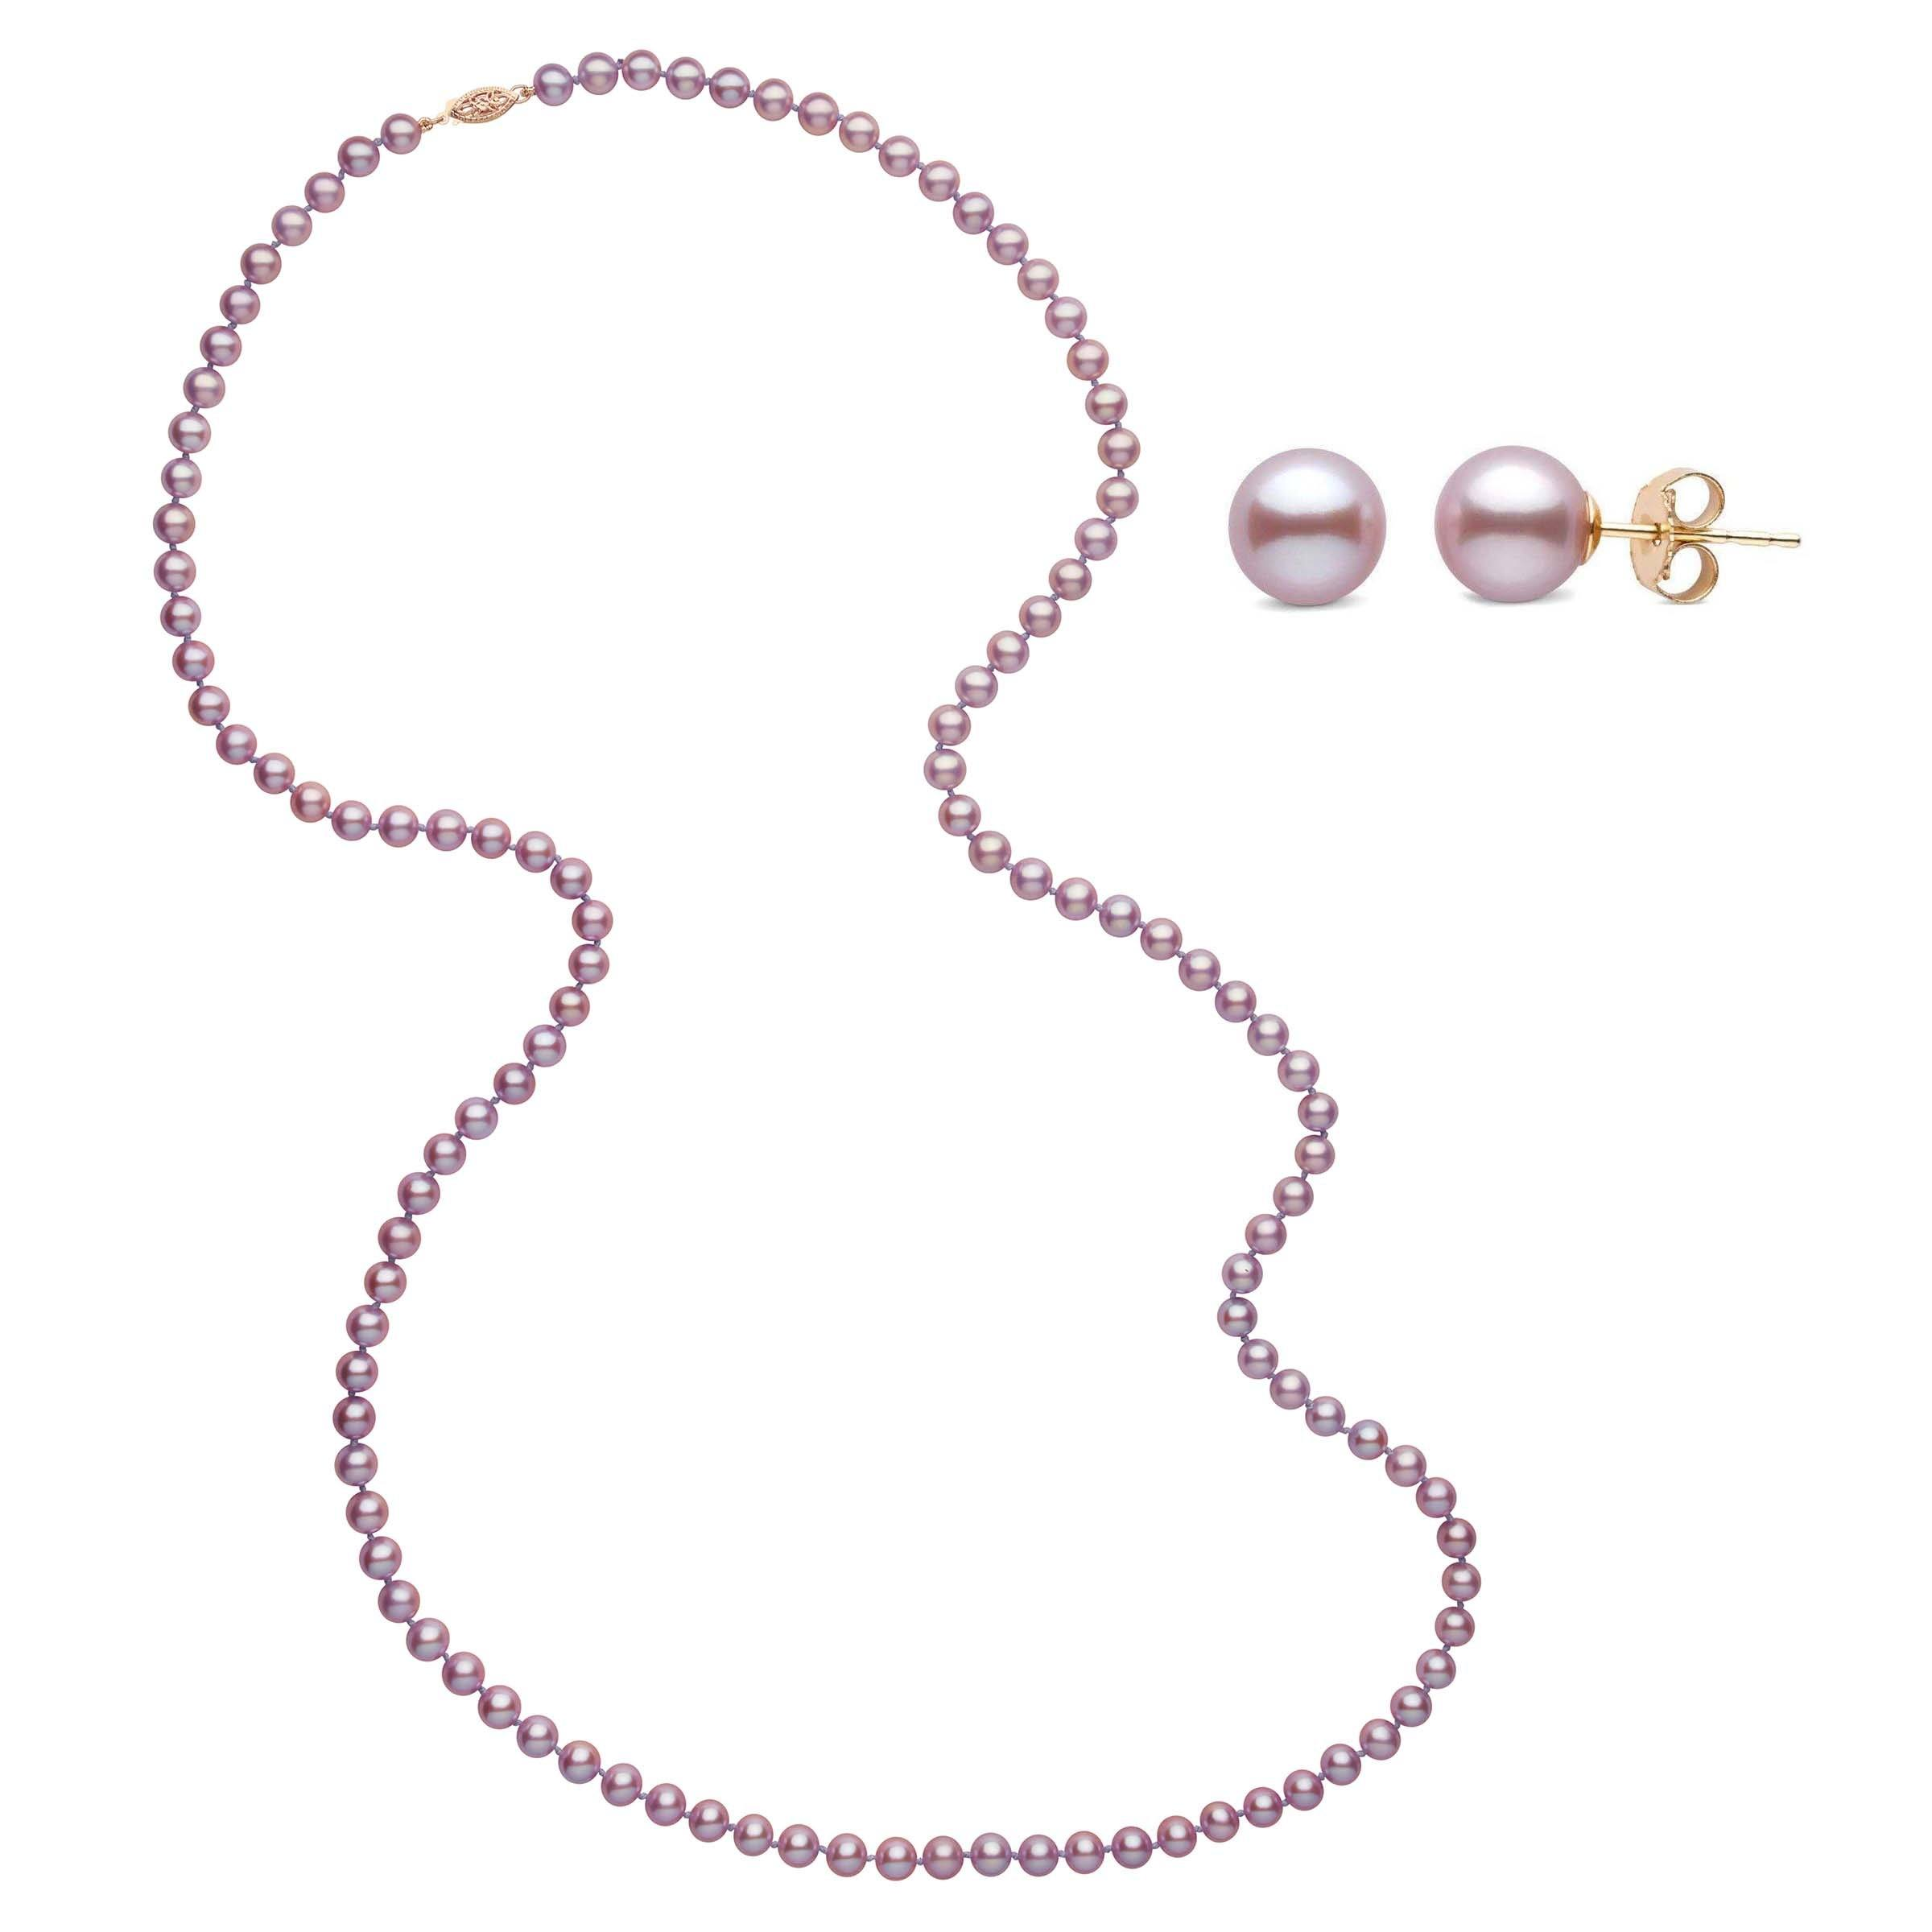 35 Inch 2 Piece Set of 6.5-7.0 mm AAA Lavender Freshwater Pearls